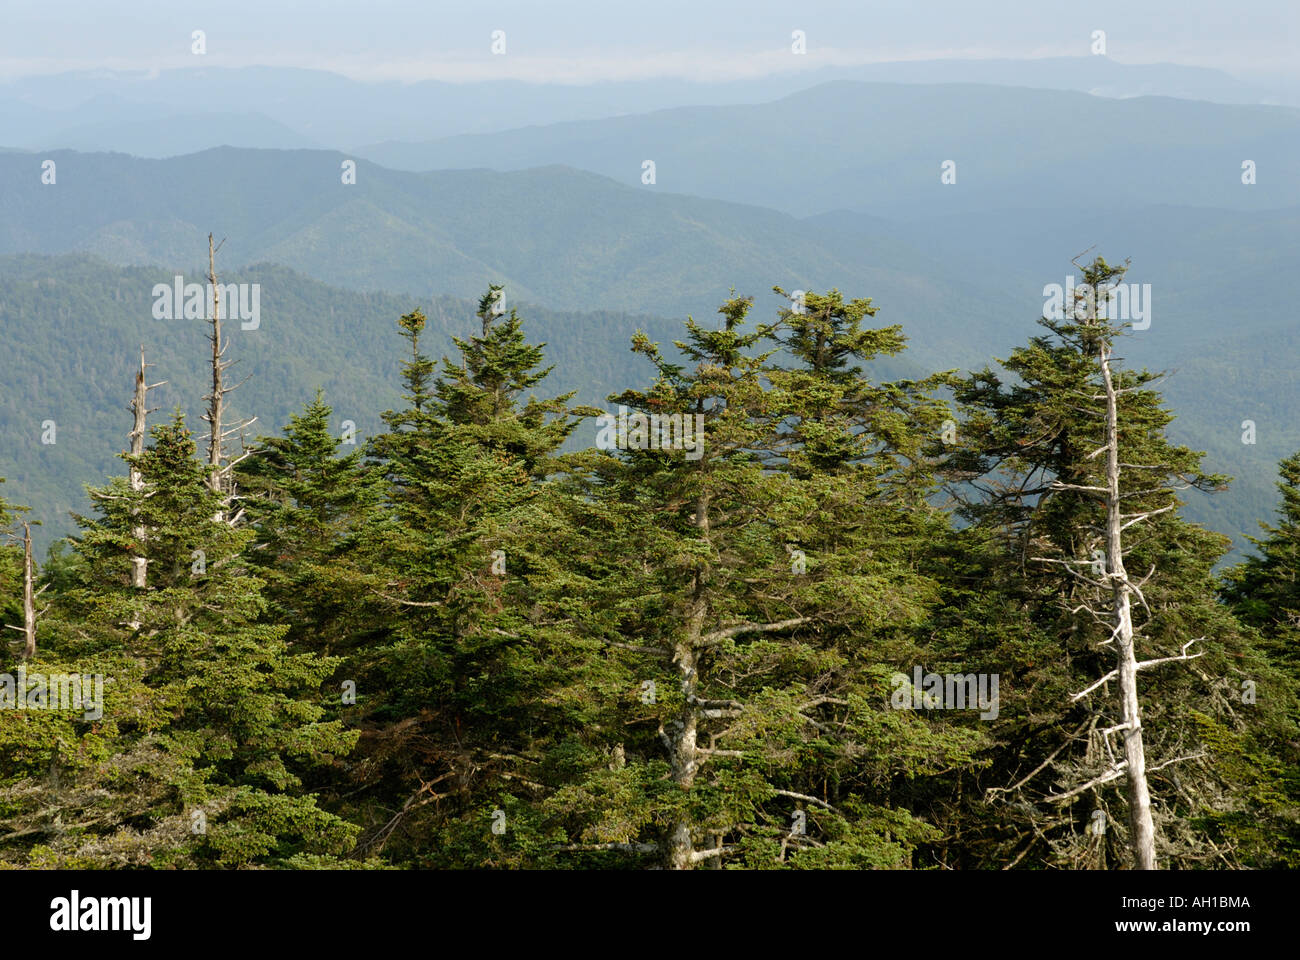 View from Clingman's Dome - Red Spruce, Picea rubens, and Fraser Fir, Abies fraseri, boreal forest at southern location - Stock Image